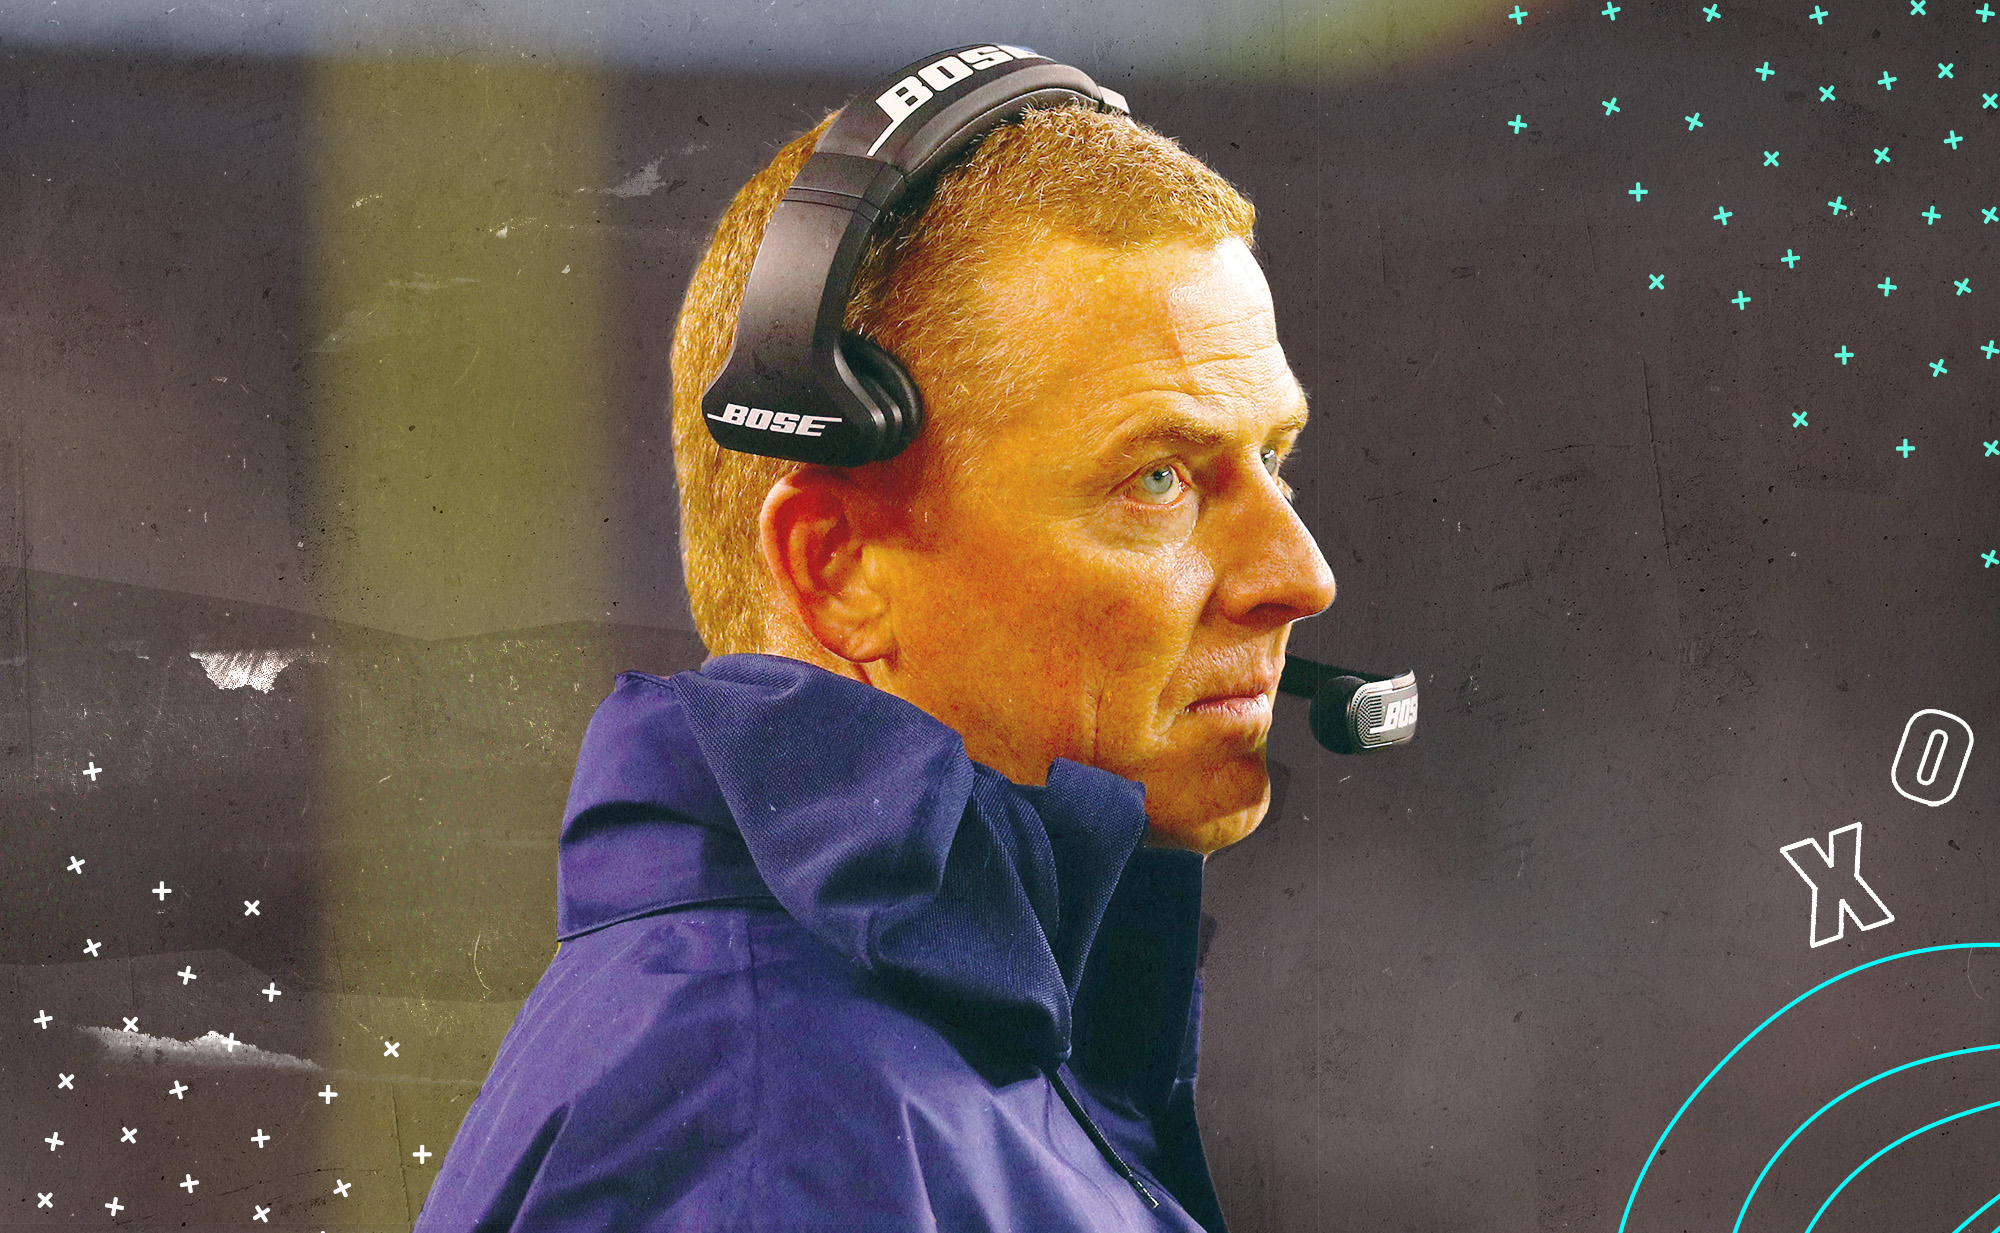 A side profile of Cowboys coach Jason Garrett, wearing a headset with no expression on his face